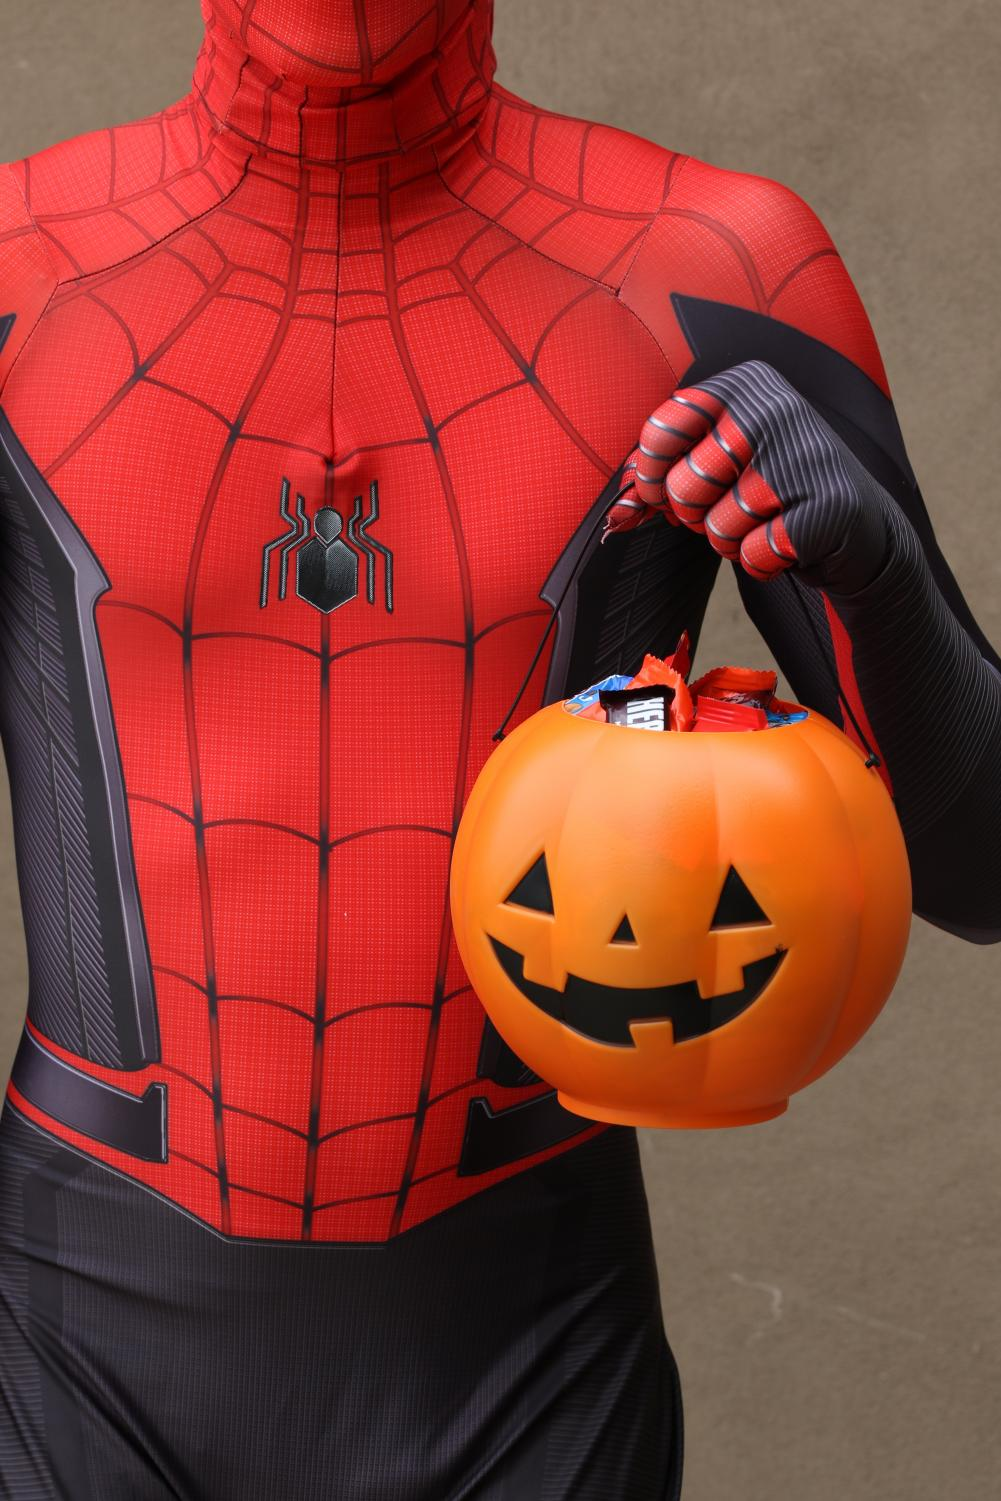 Being in high school doesn't stop many GBHS students from going out and participating in neighborhood trick-or-treating or dressing up.